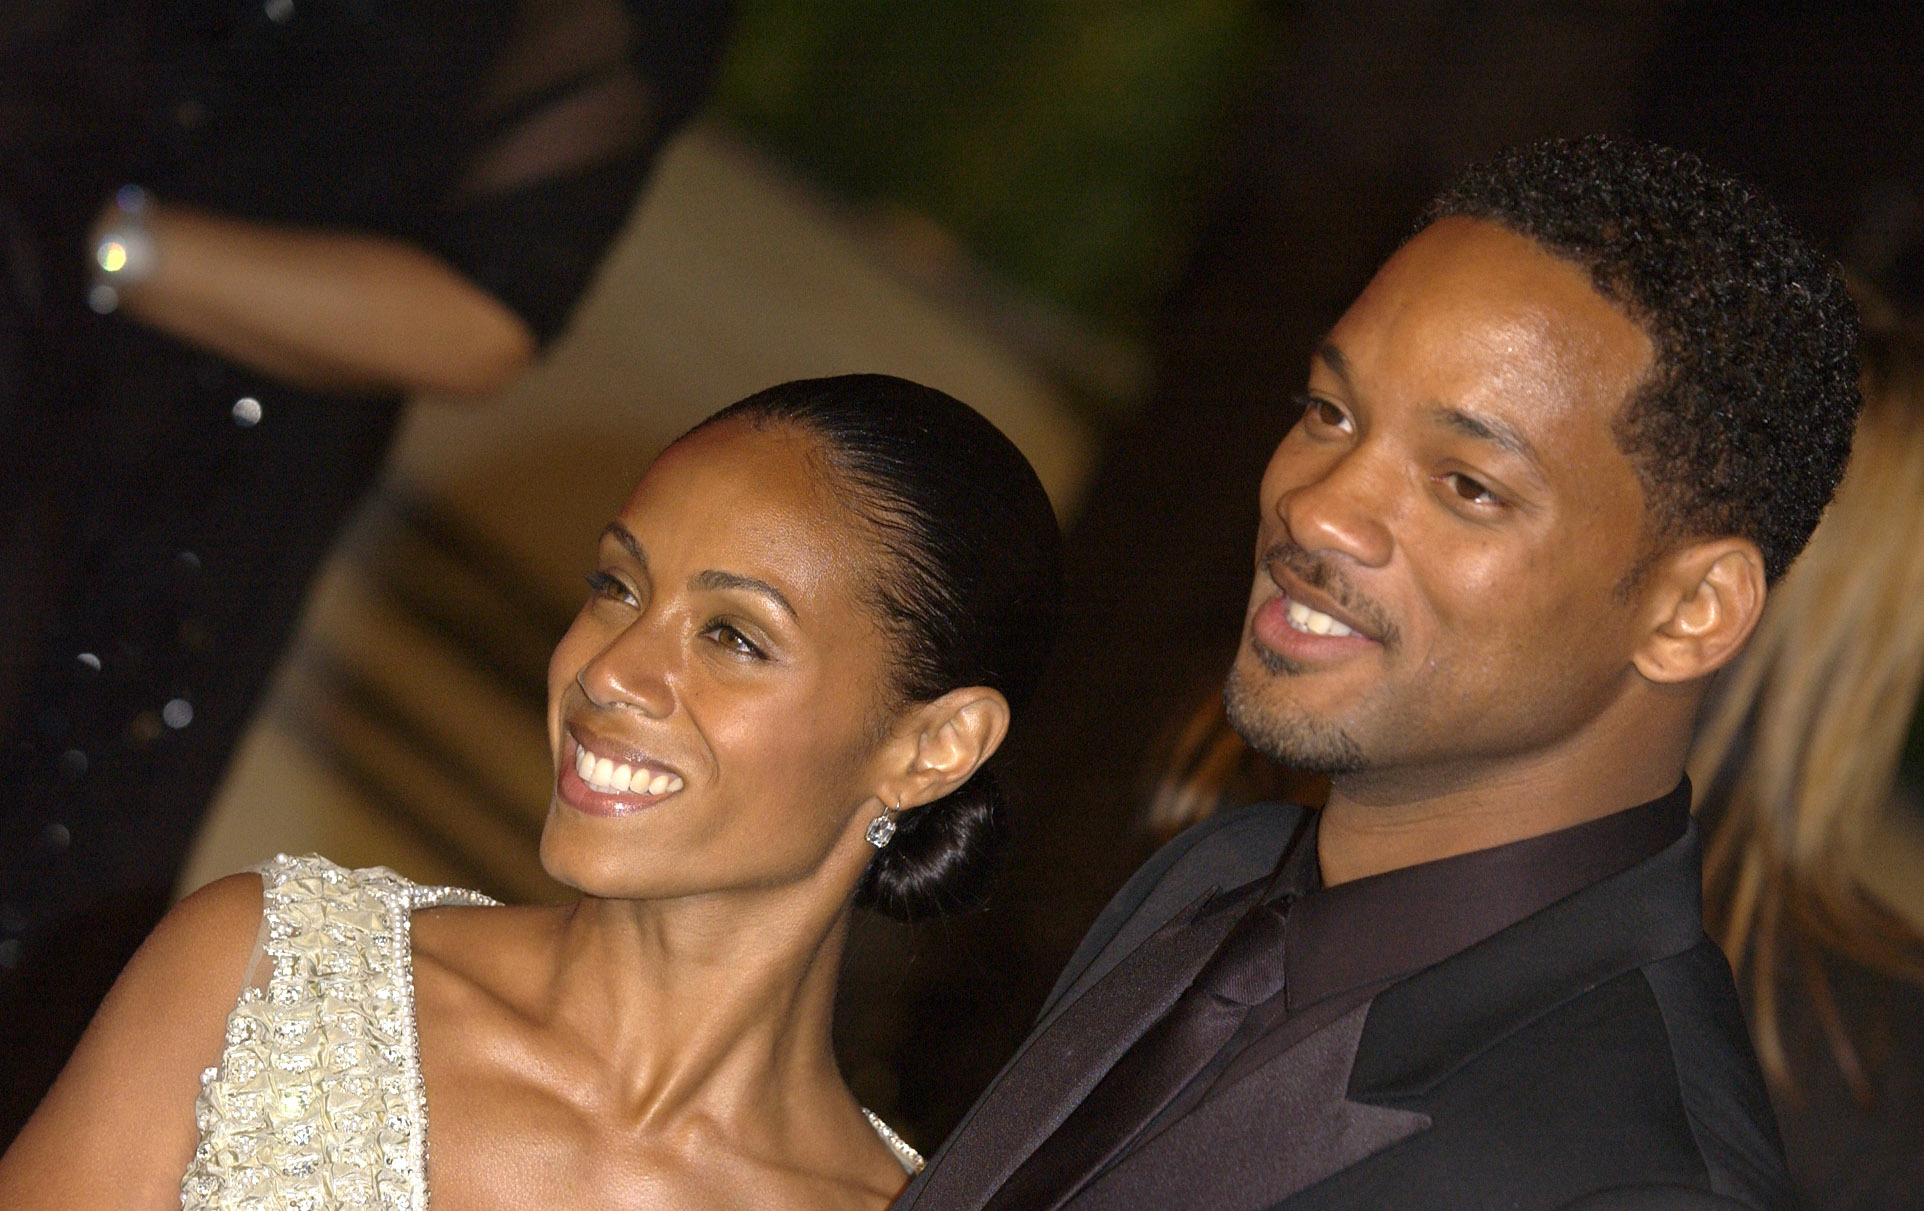 Jada Pinkett Smith and husband Will Smith on the red carpet